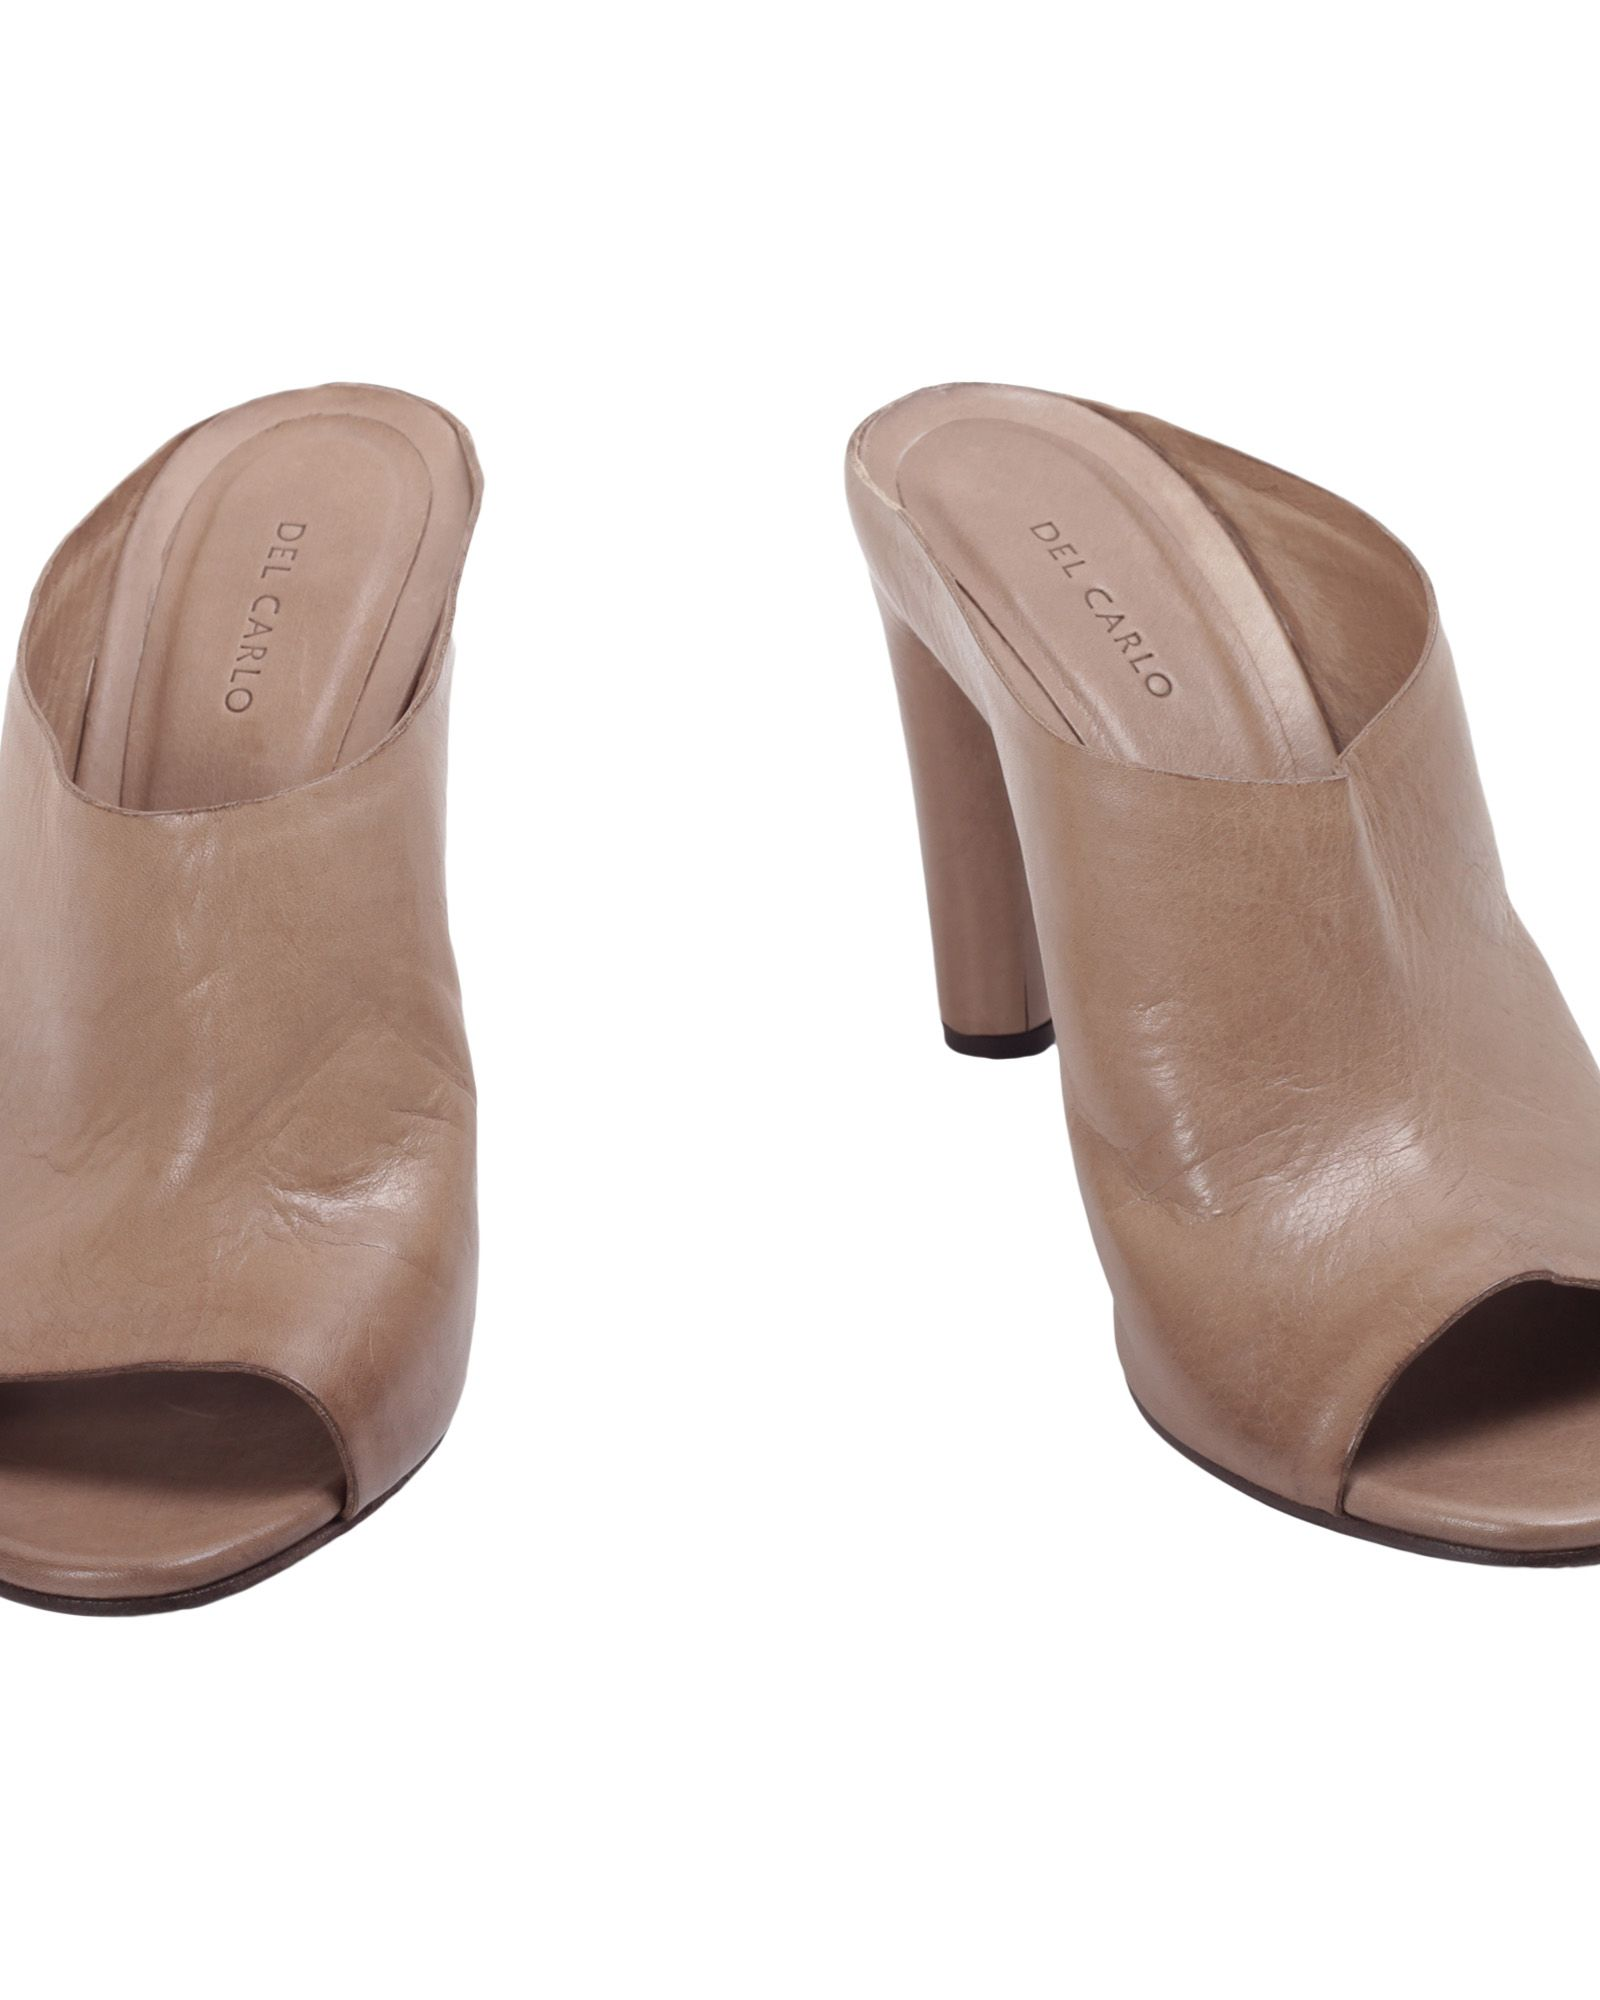 Clearance Buy Many Kinds Of Online ROBERTO DEL CARLO Leather Heeled Mules Pre Order Cheap Online t2UnofAR59